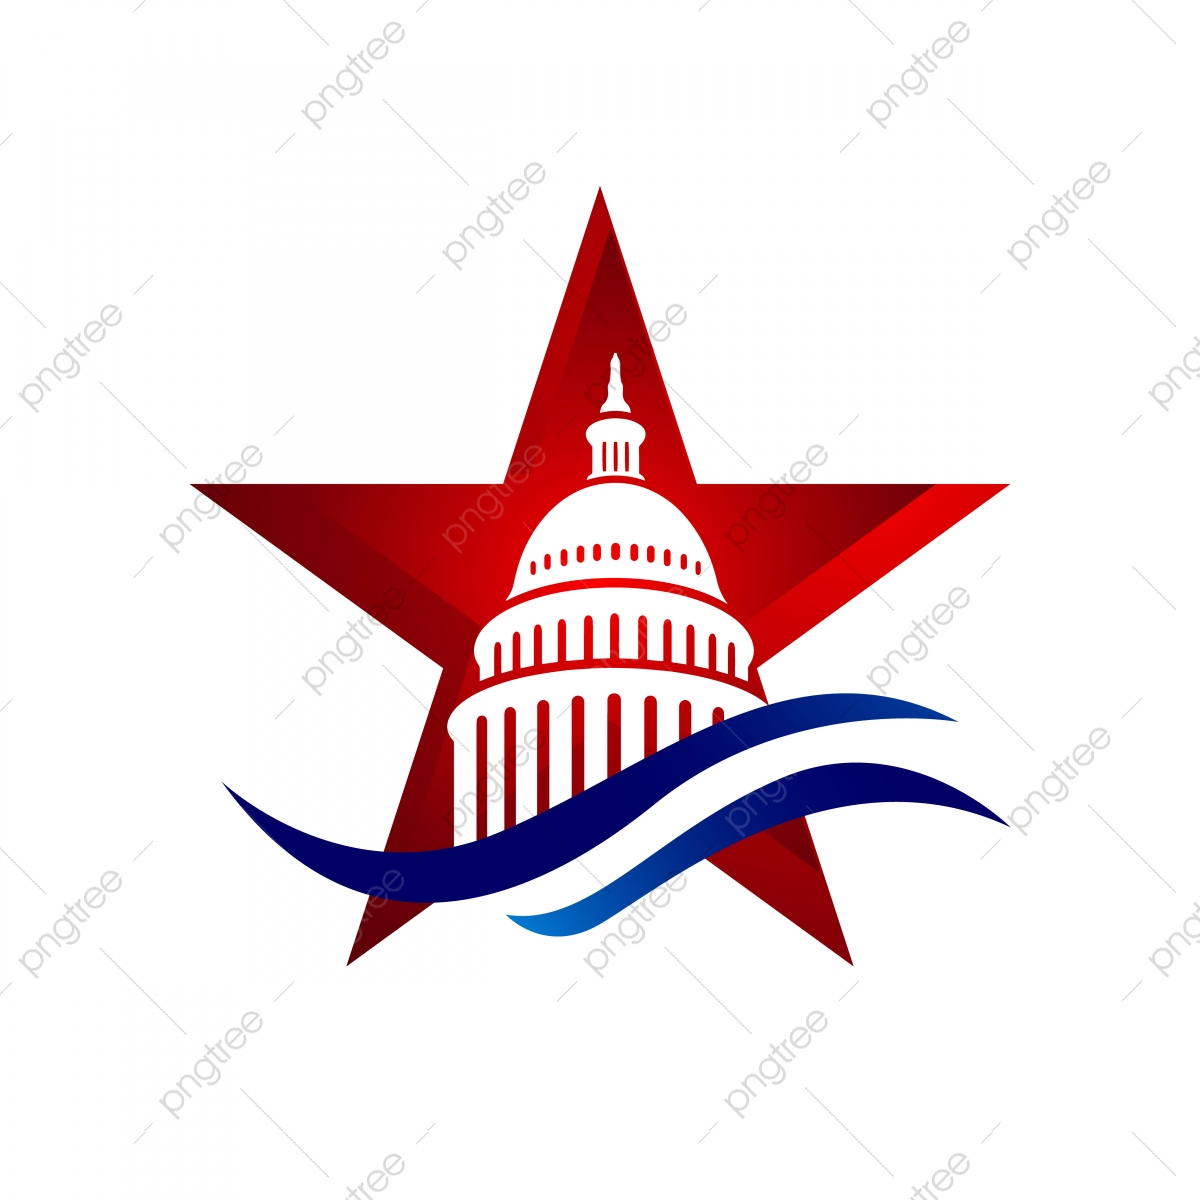 Creative Simple American Capitol Building Vector Logo Design Template For Free Download On Pngtree,Minimalist Kitchen Design Black